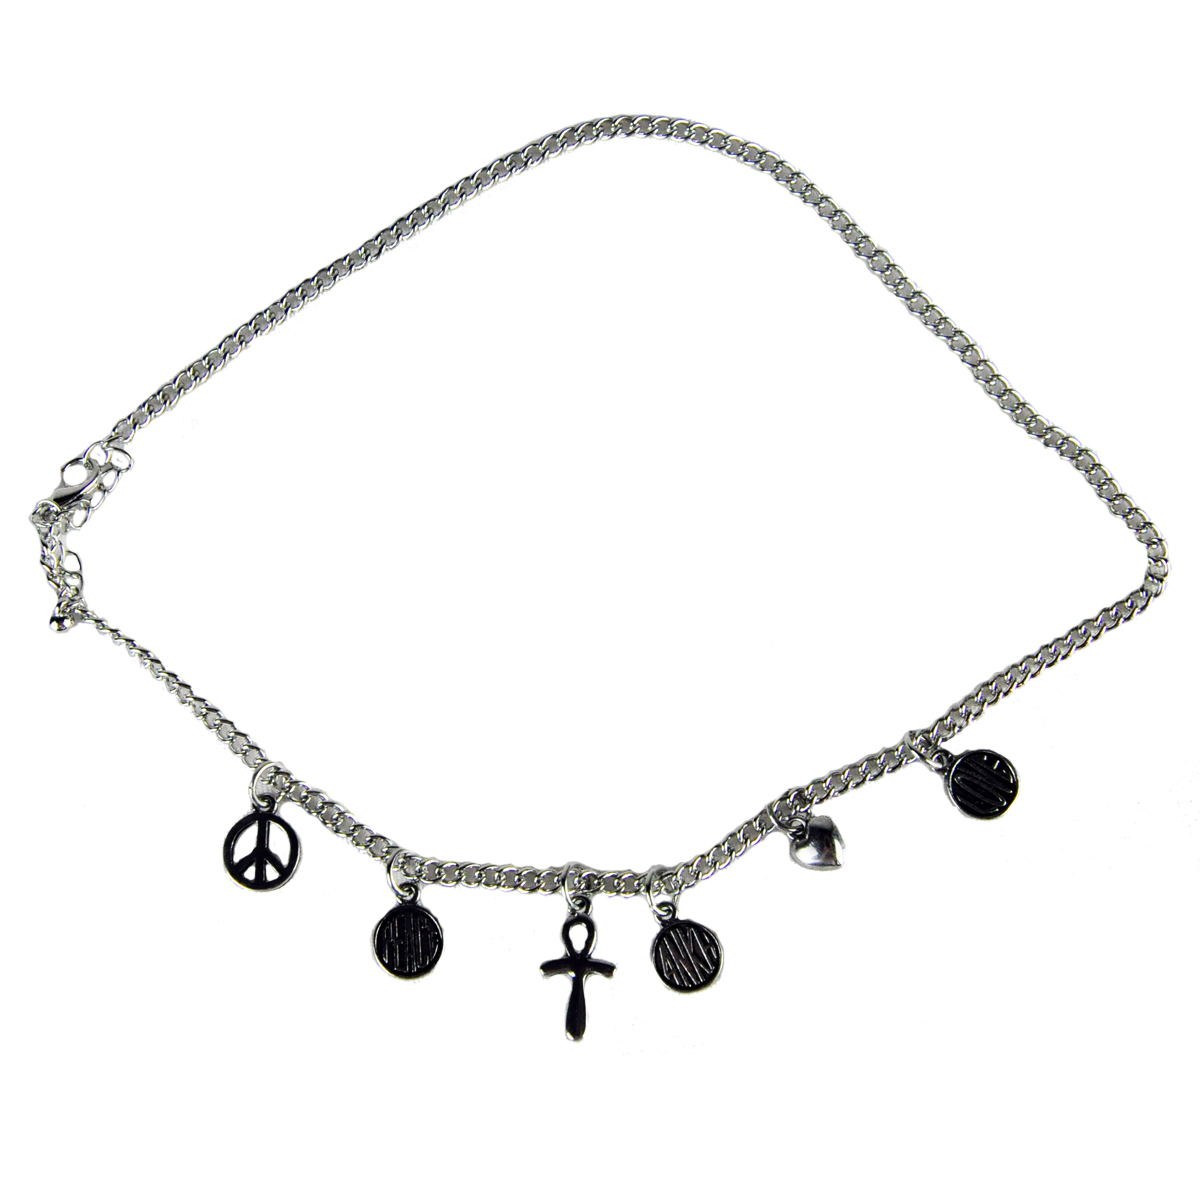 Peace, Ankh & Heart Chain Necklace